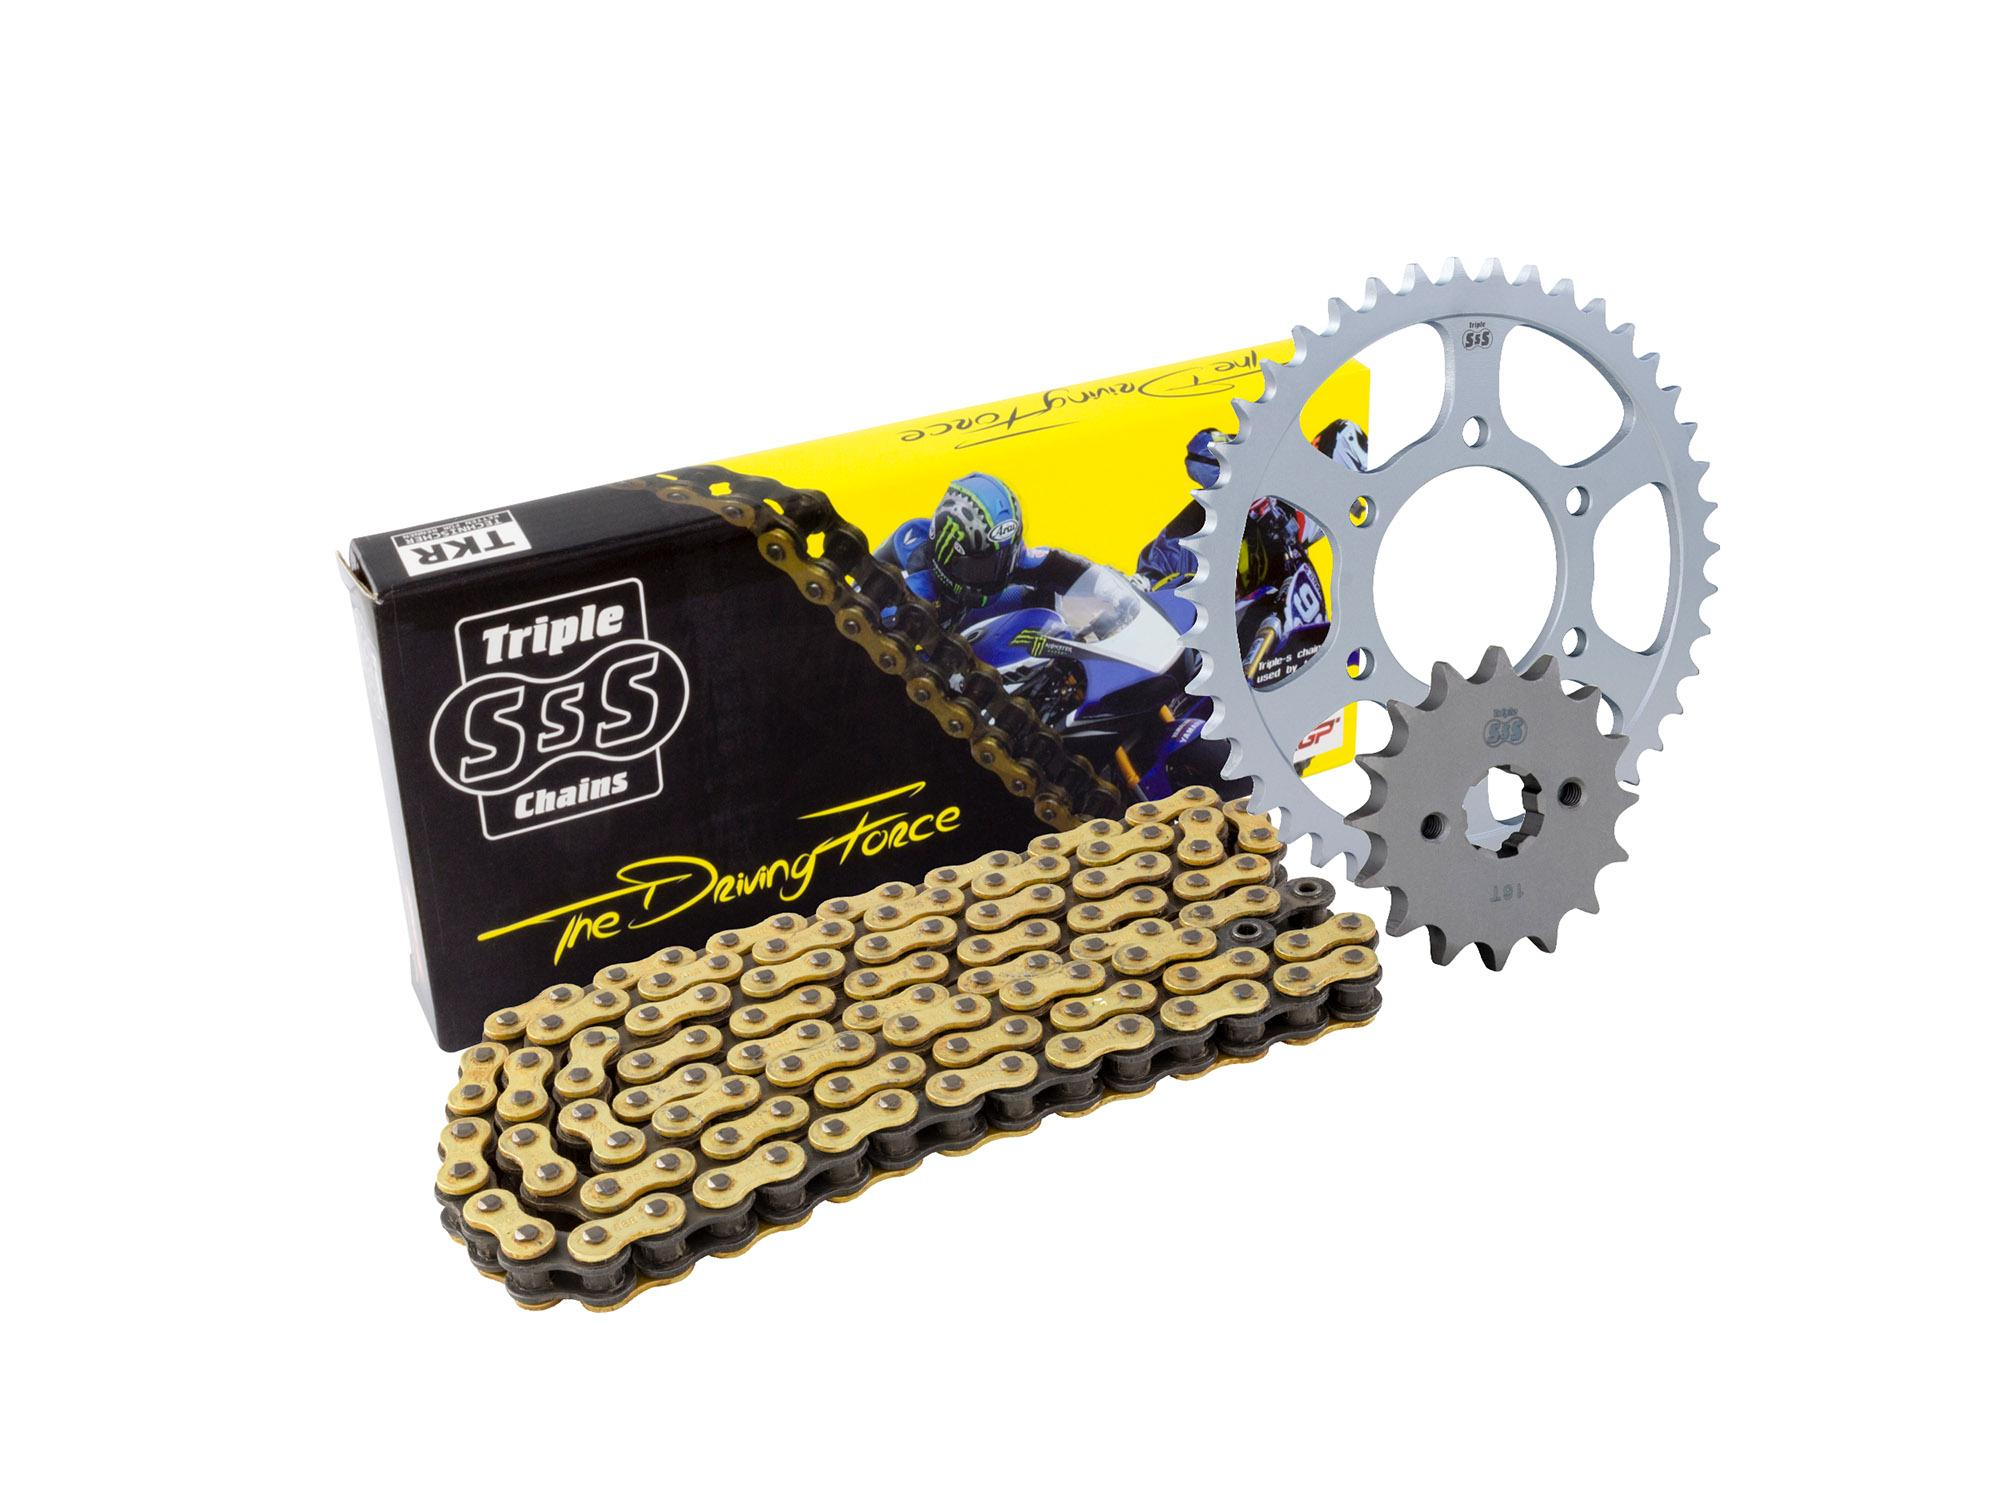 Yamaha YZF R1 / SP 06-08 Chain & Sprocket Kit: 17T Front, 45T Rear, HD O-Ring Gold Chain 530H 118 Link